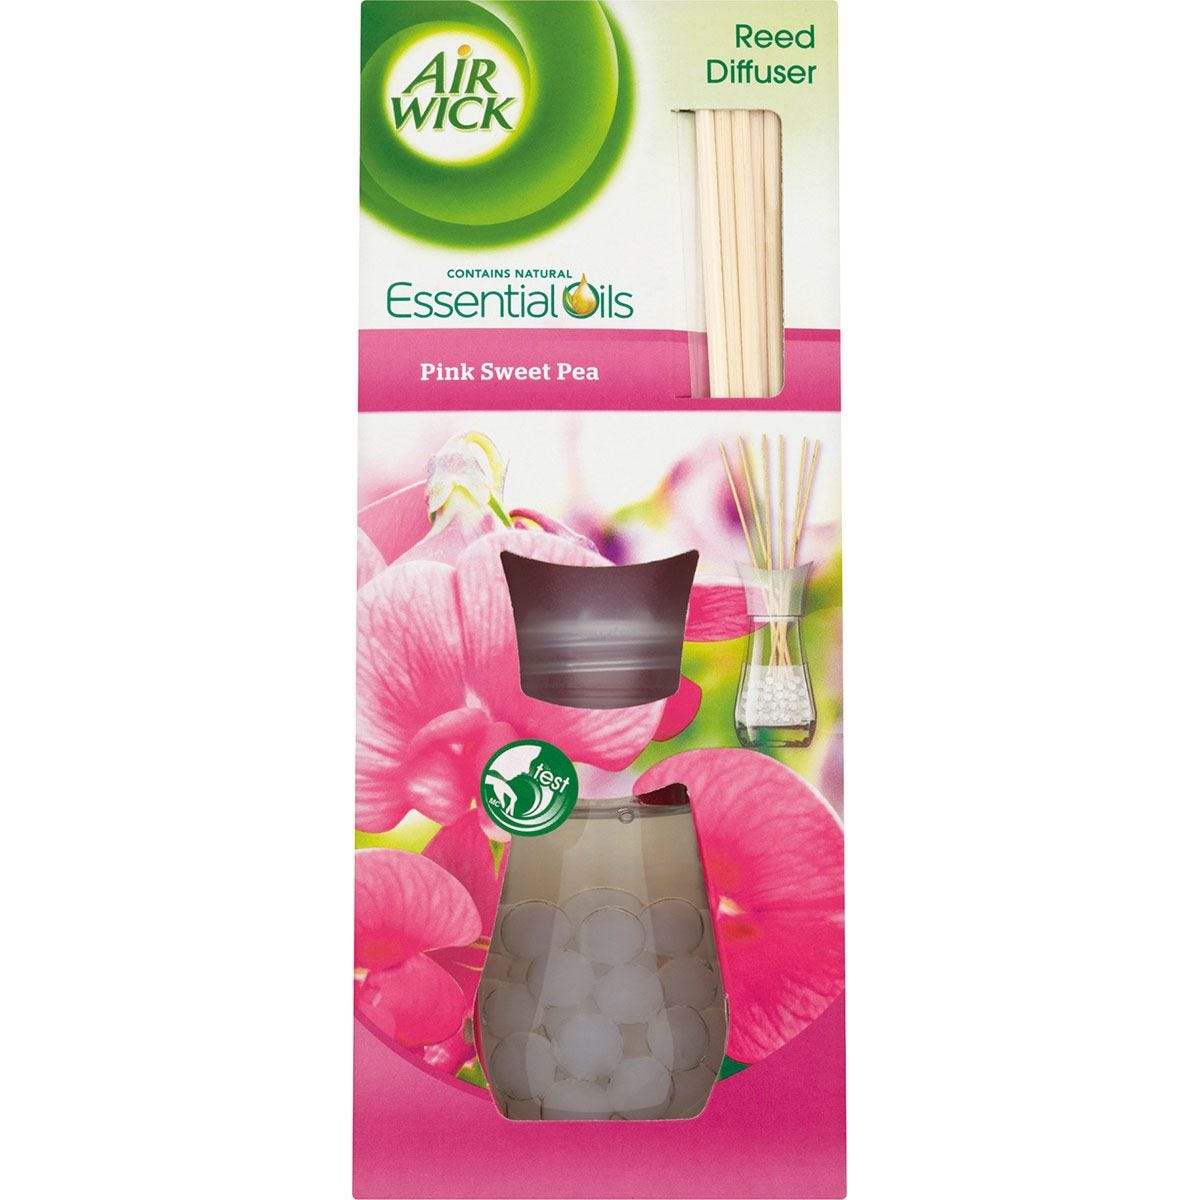 Air Wick Pink Sweet Pea Reed Diffuser